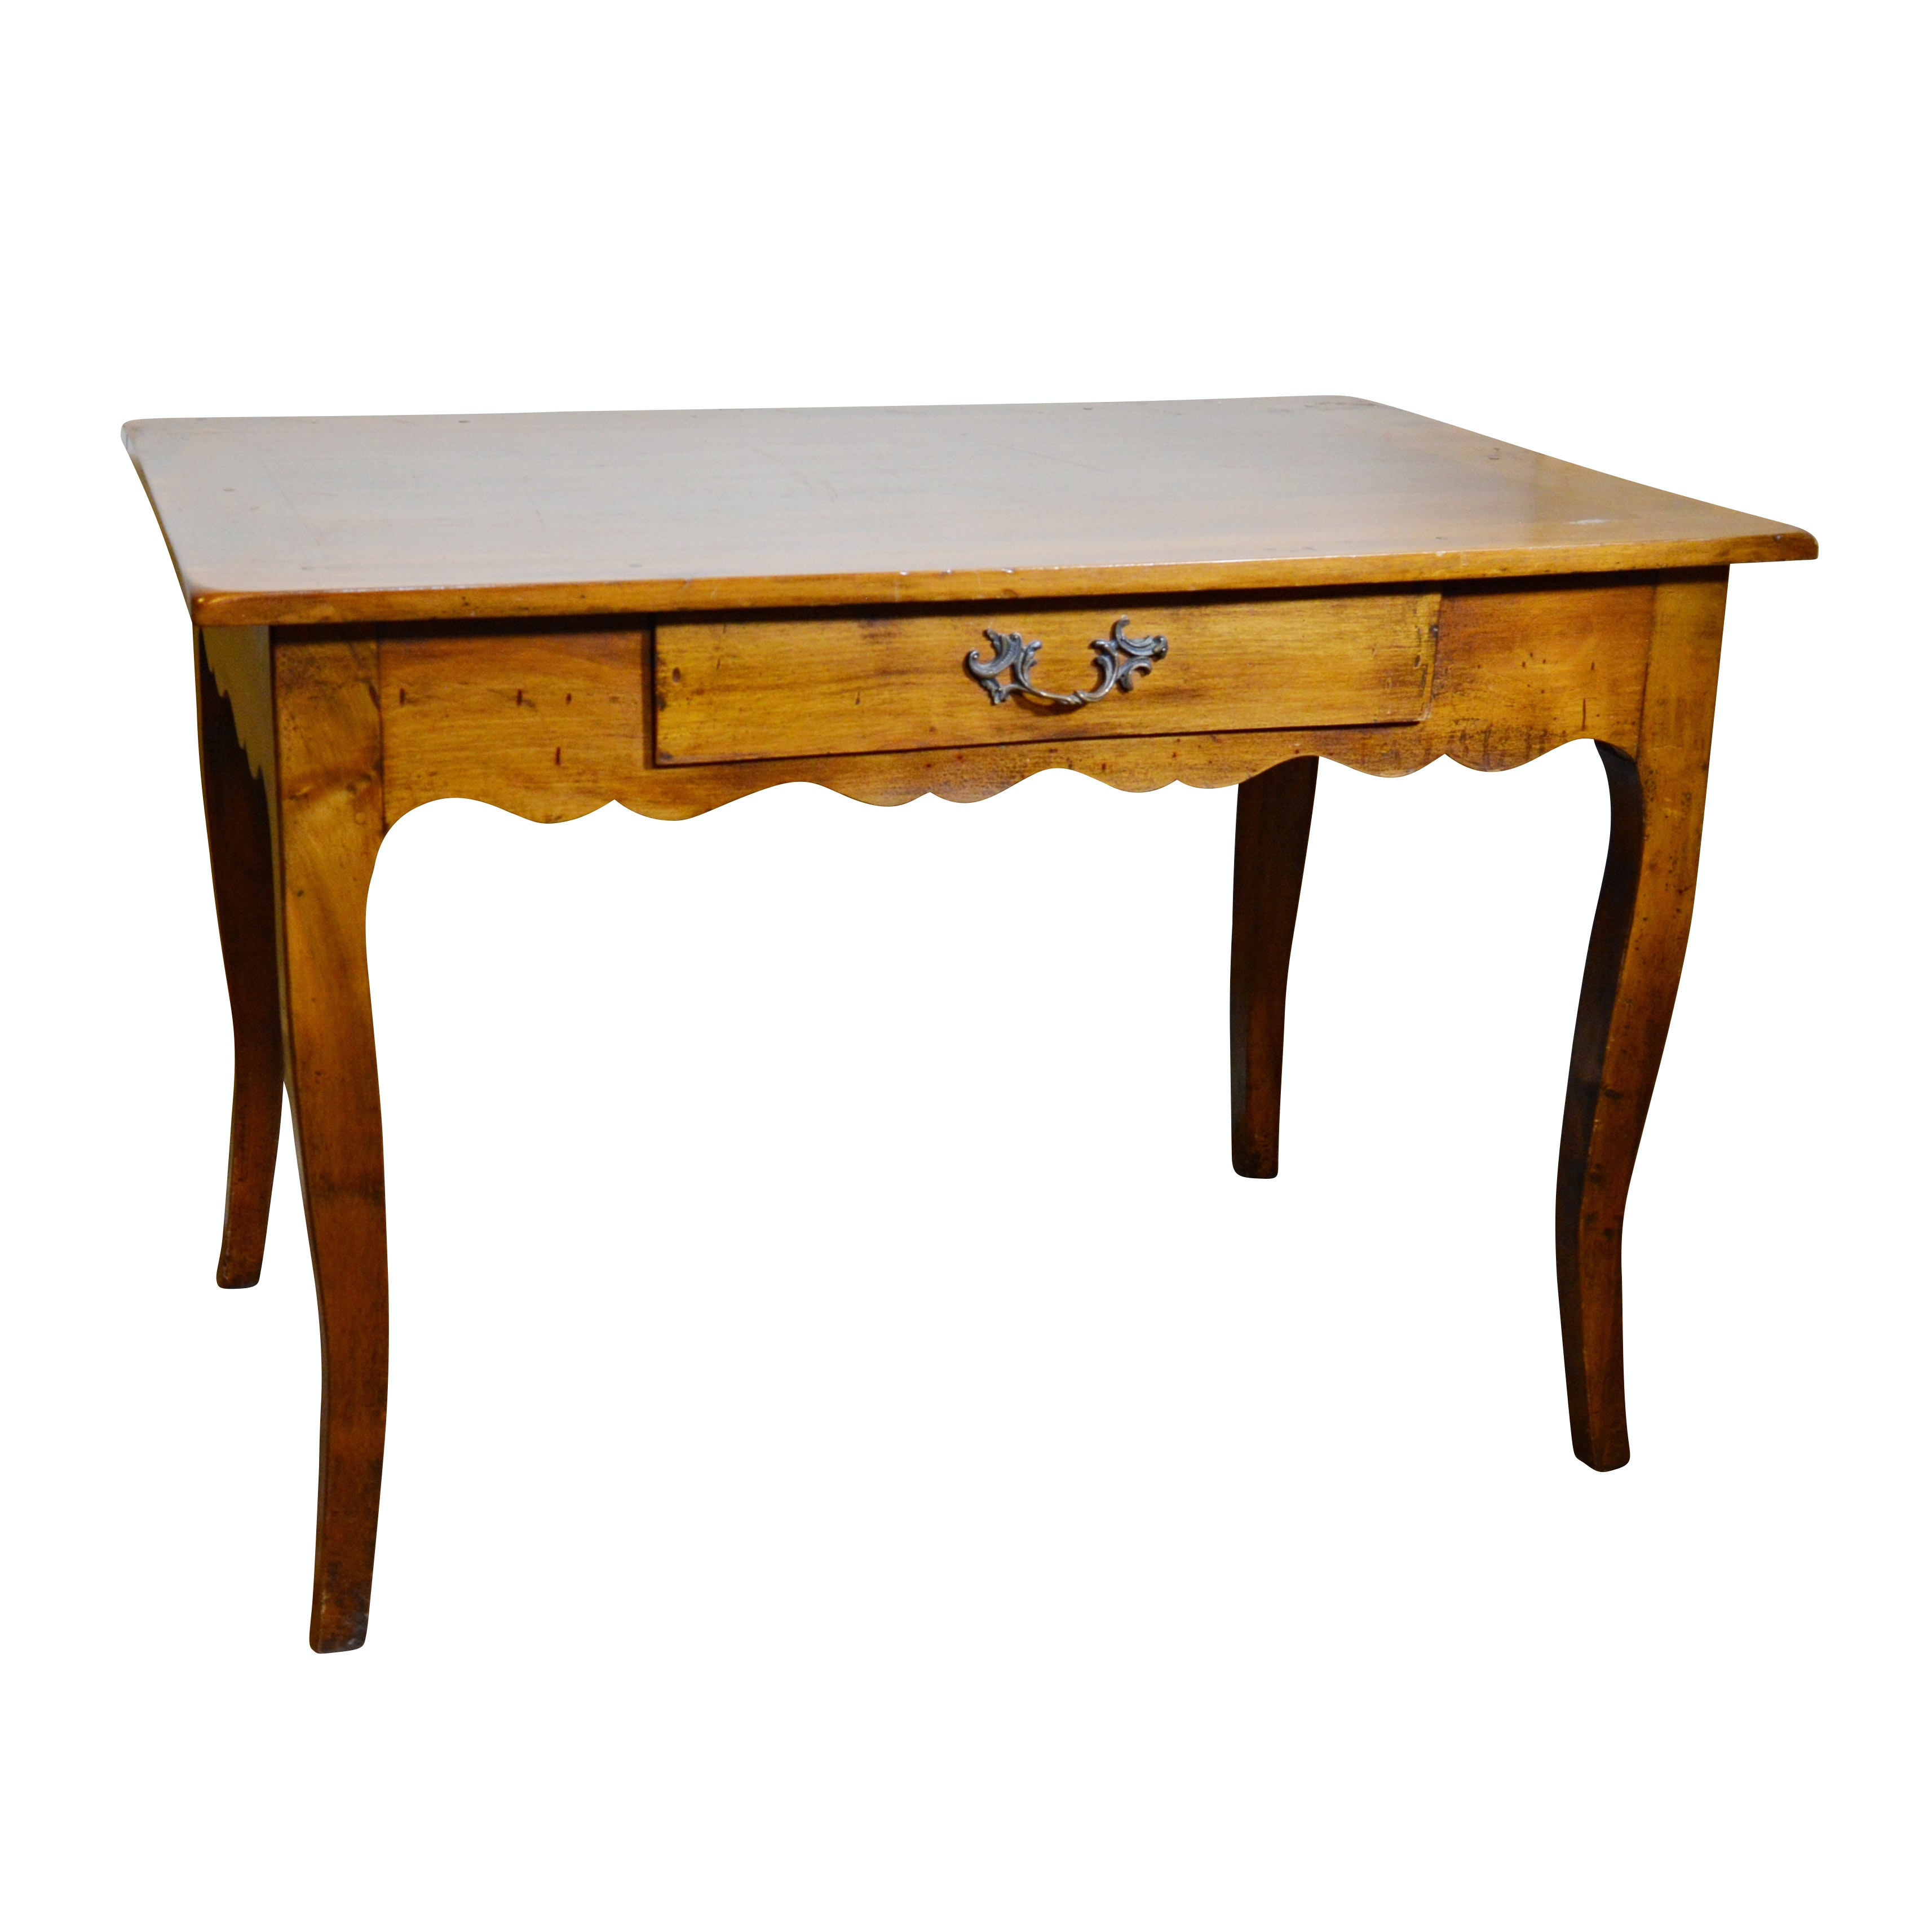 Bloomingdale's French Provincial Style Walnut Writing Table, Contemporary